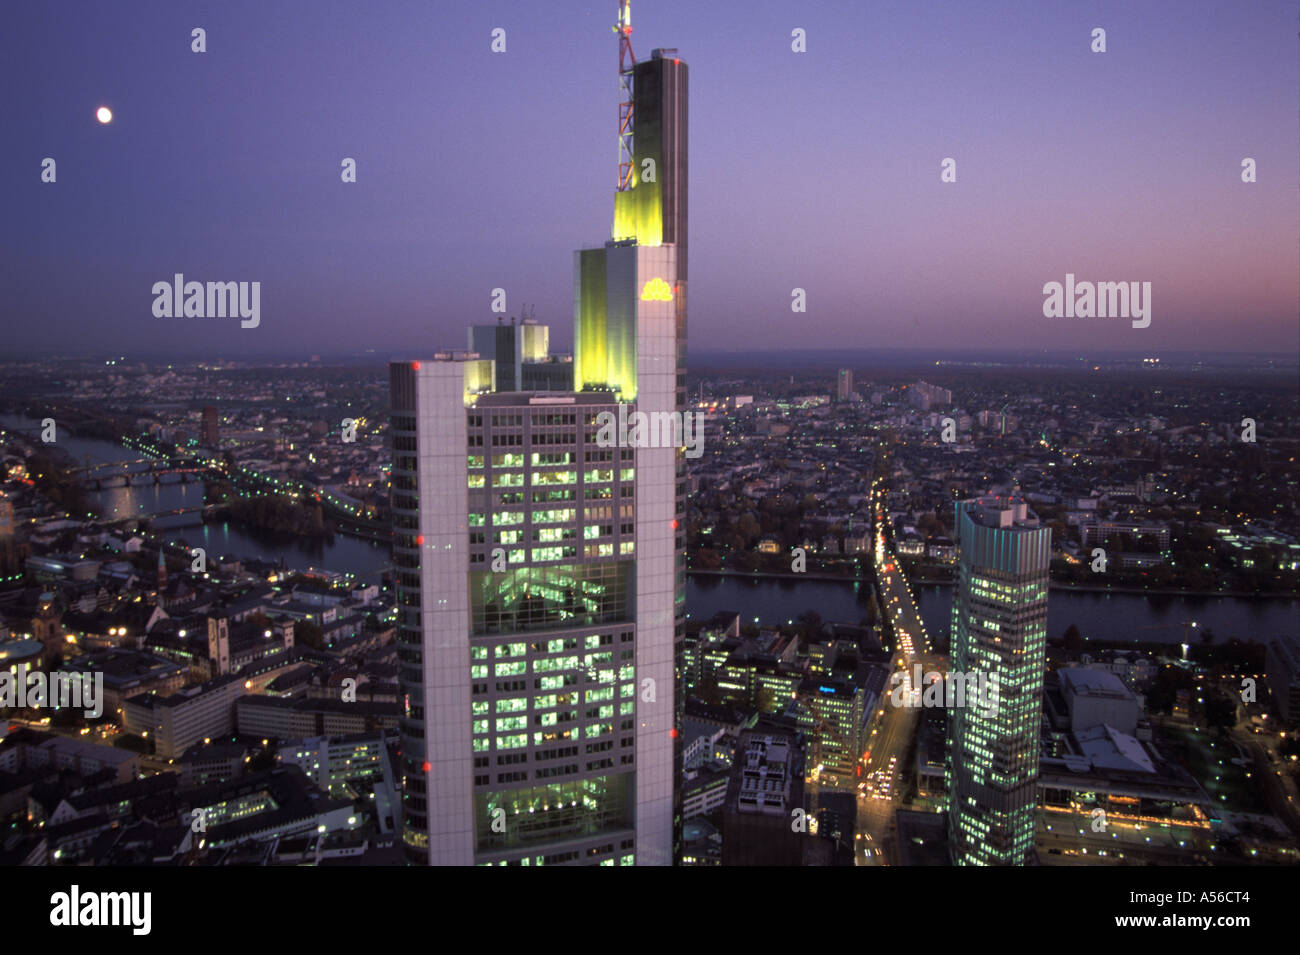 Frankfurt/M, Germany, main building of the COMMERZBANK (center) and on the right side bottom the EZB ( Europaeische Zentralbank/ - Stock Image